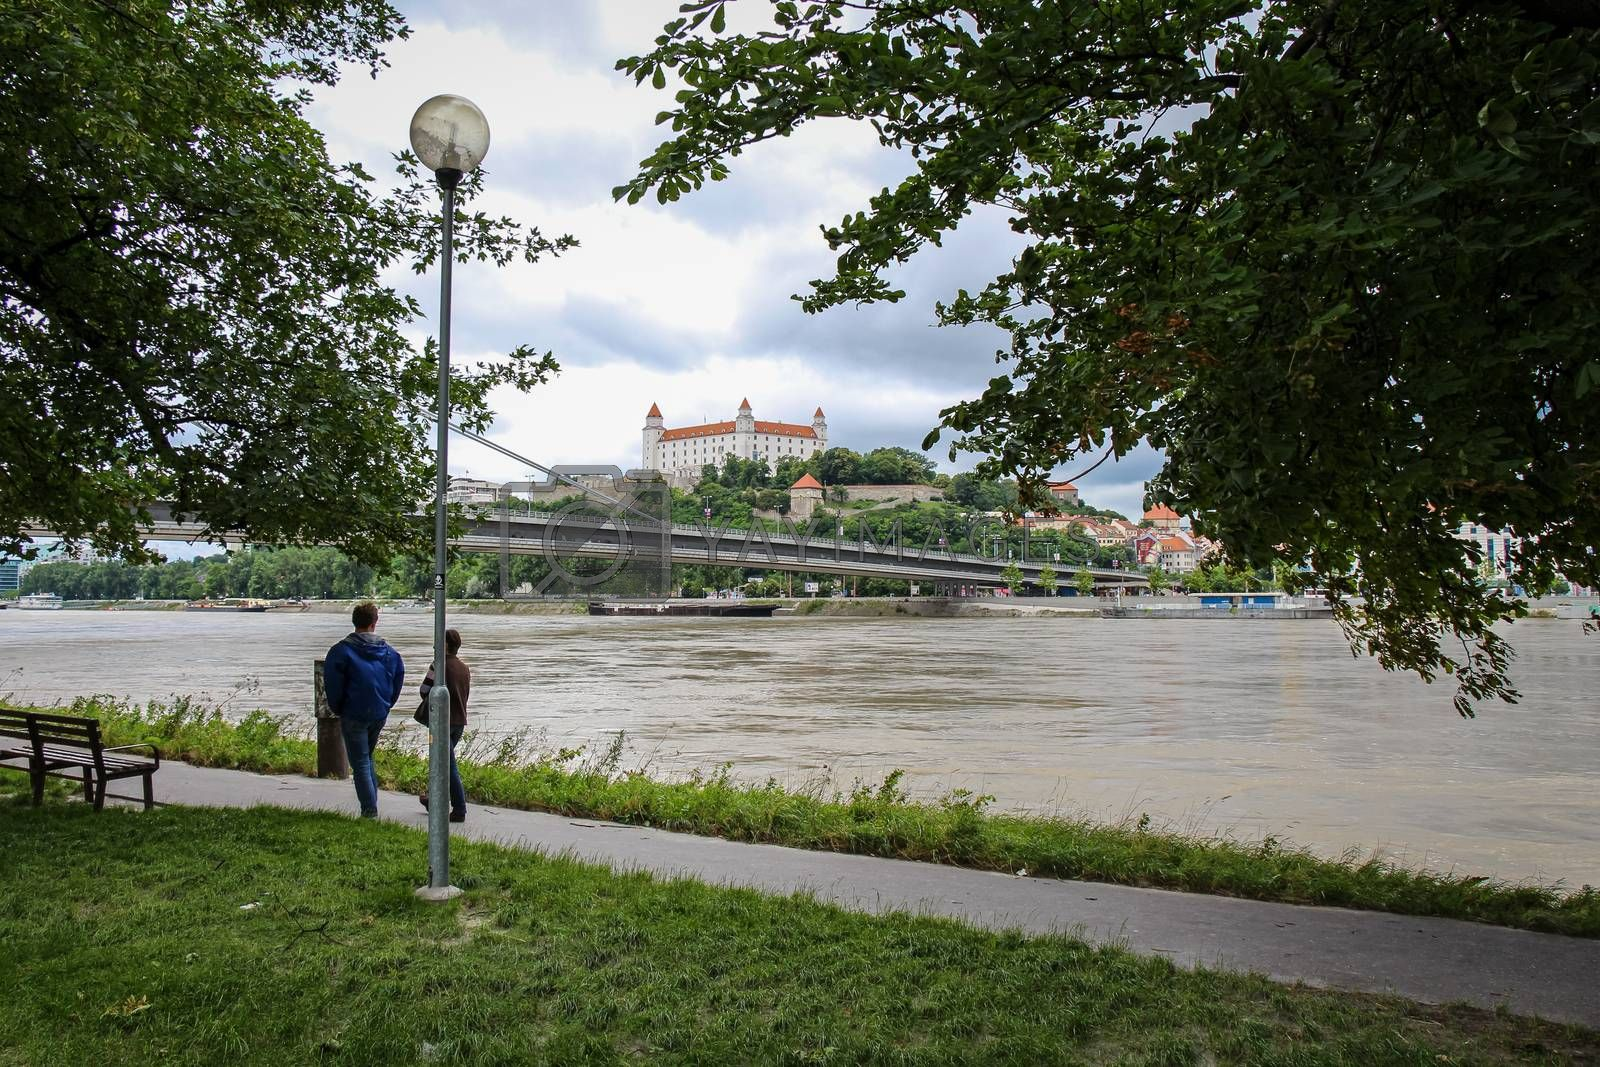 Bratislava, Slovakia - July 5th 2020: People walking along a footpath by the River Danube in Bratislava, with the Castle on the hill in the background, Slovakia